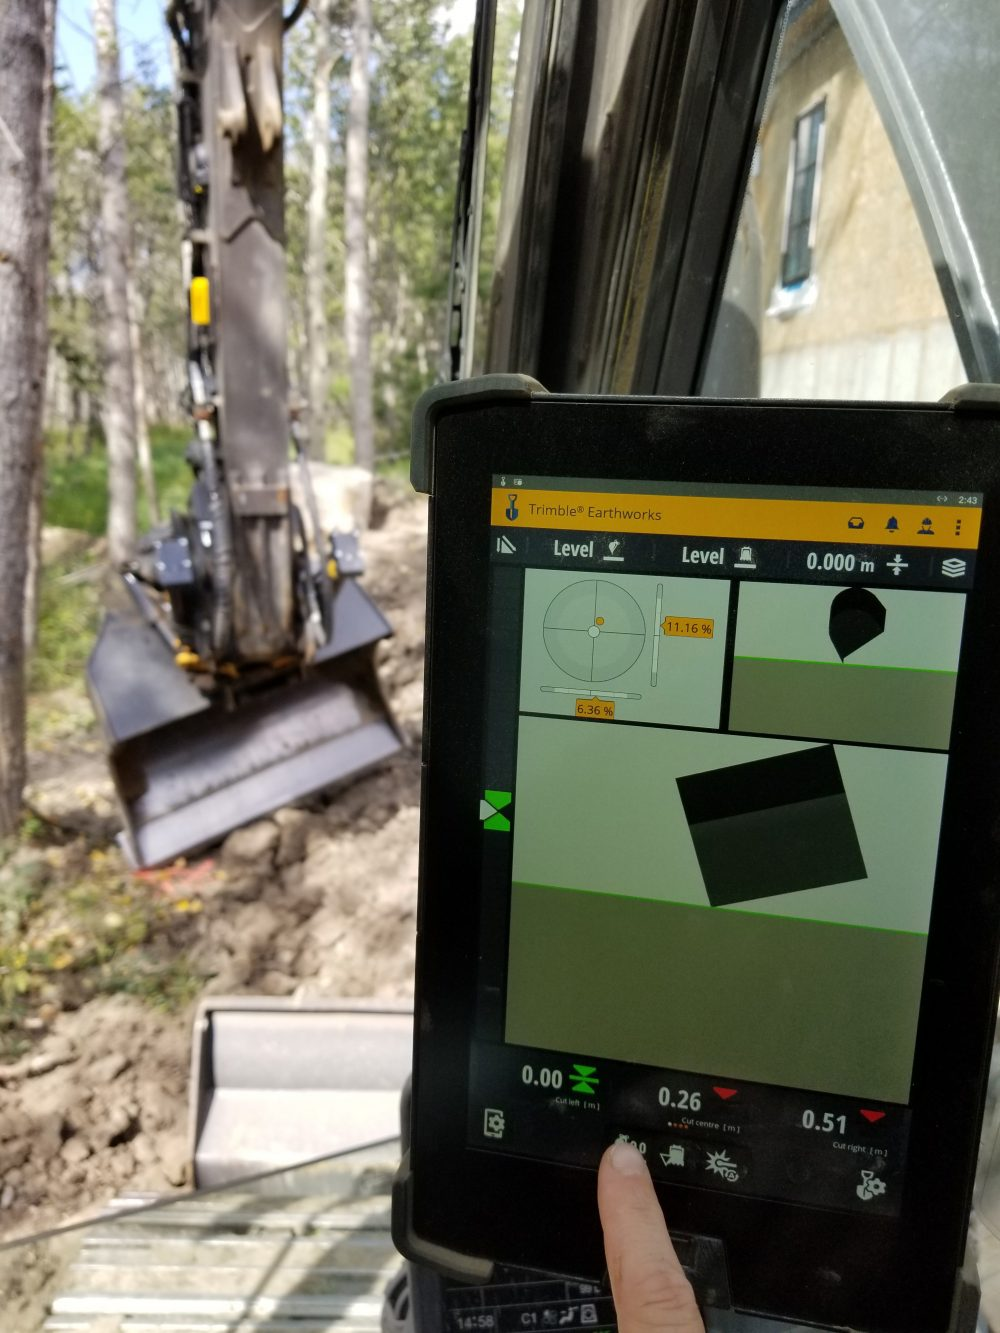 Trimble Earthworks Grade Control Platform Version 1.9 Supports Full Automatics for Tiltrotators and Universal Total Stations for Motor Graders